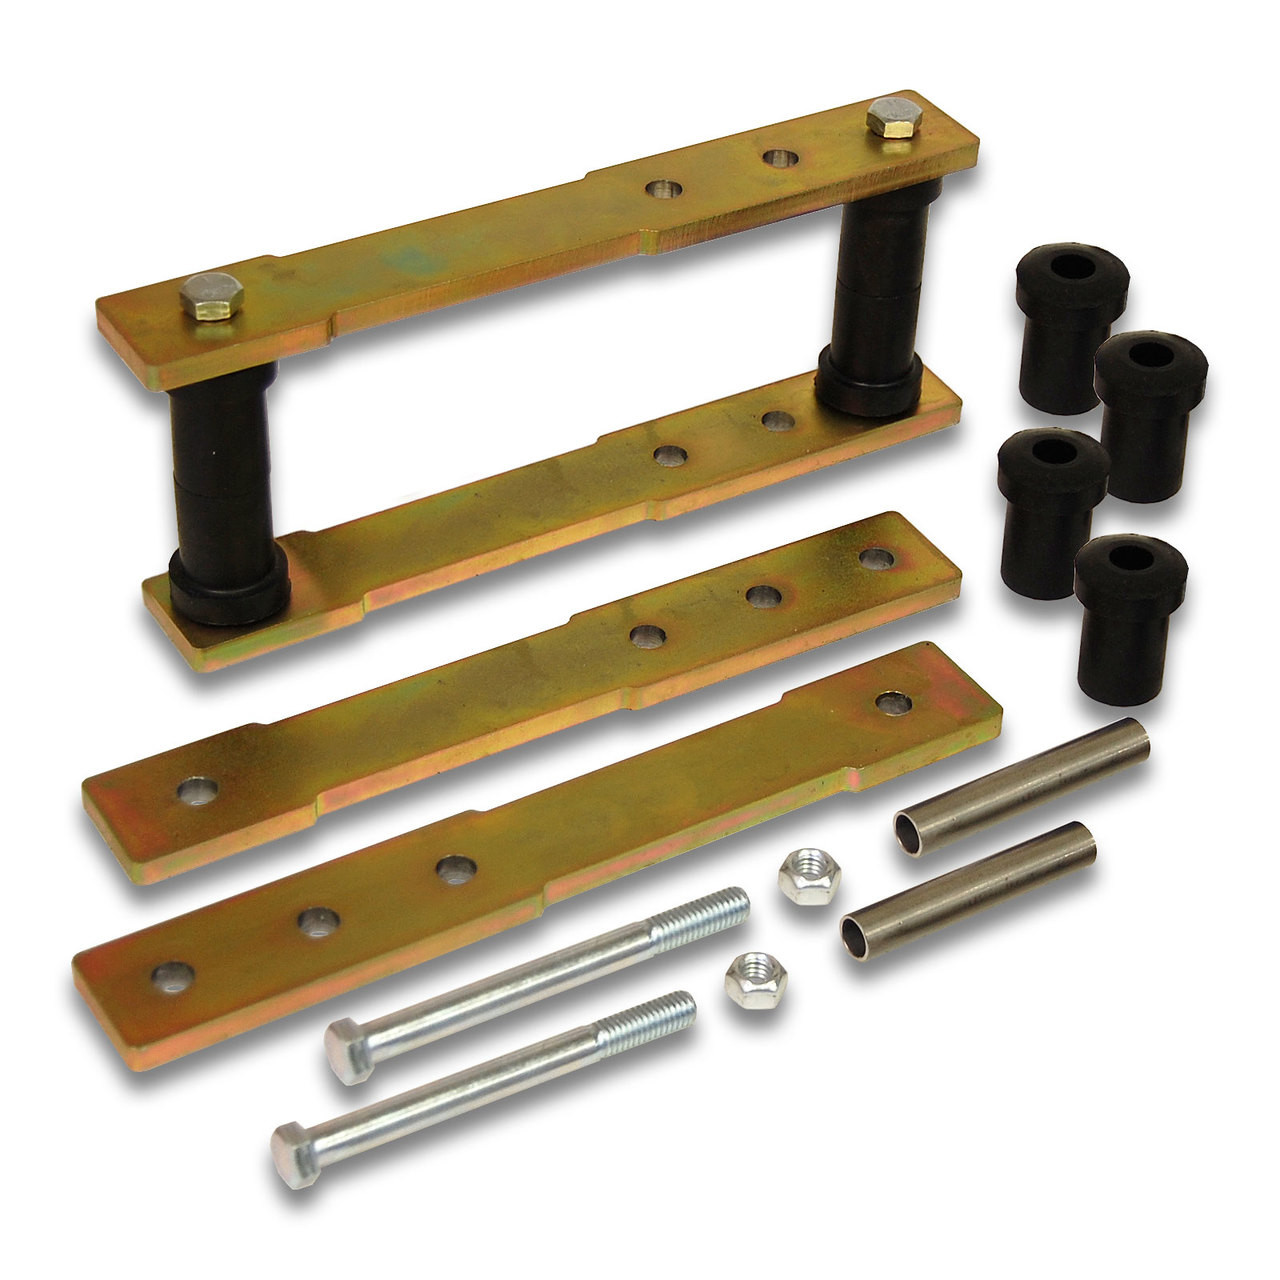 """SK-5004 - 1"""" to 4"""" Rear Shackle Lift Kit for 1960's thru 1970's Ford & Mercury Vehicles 